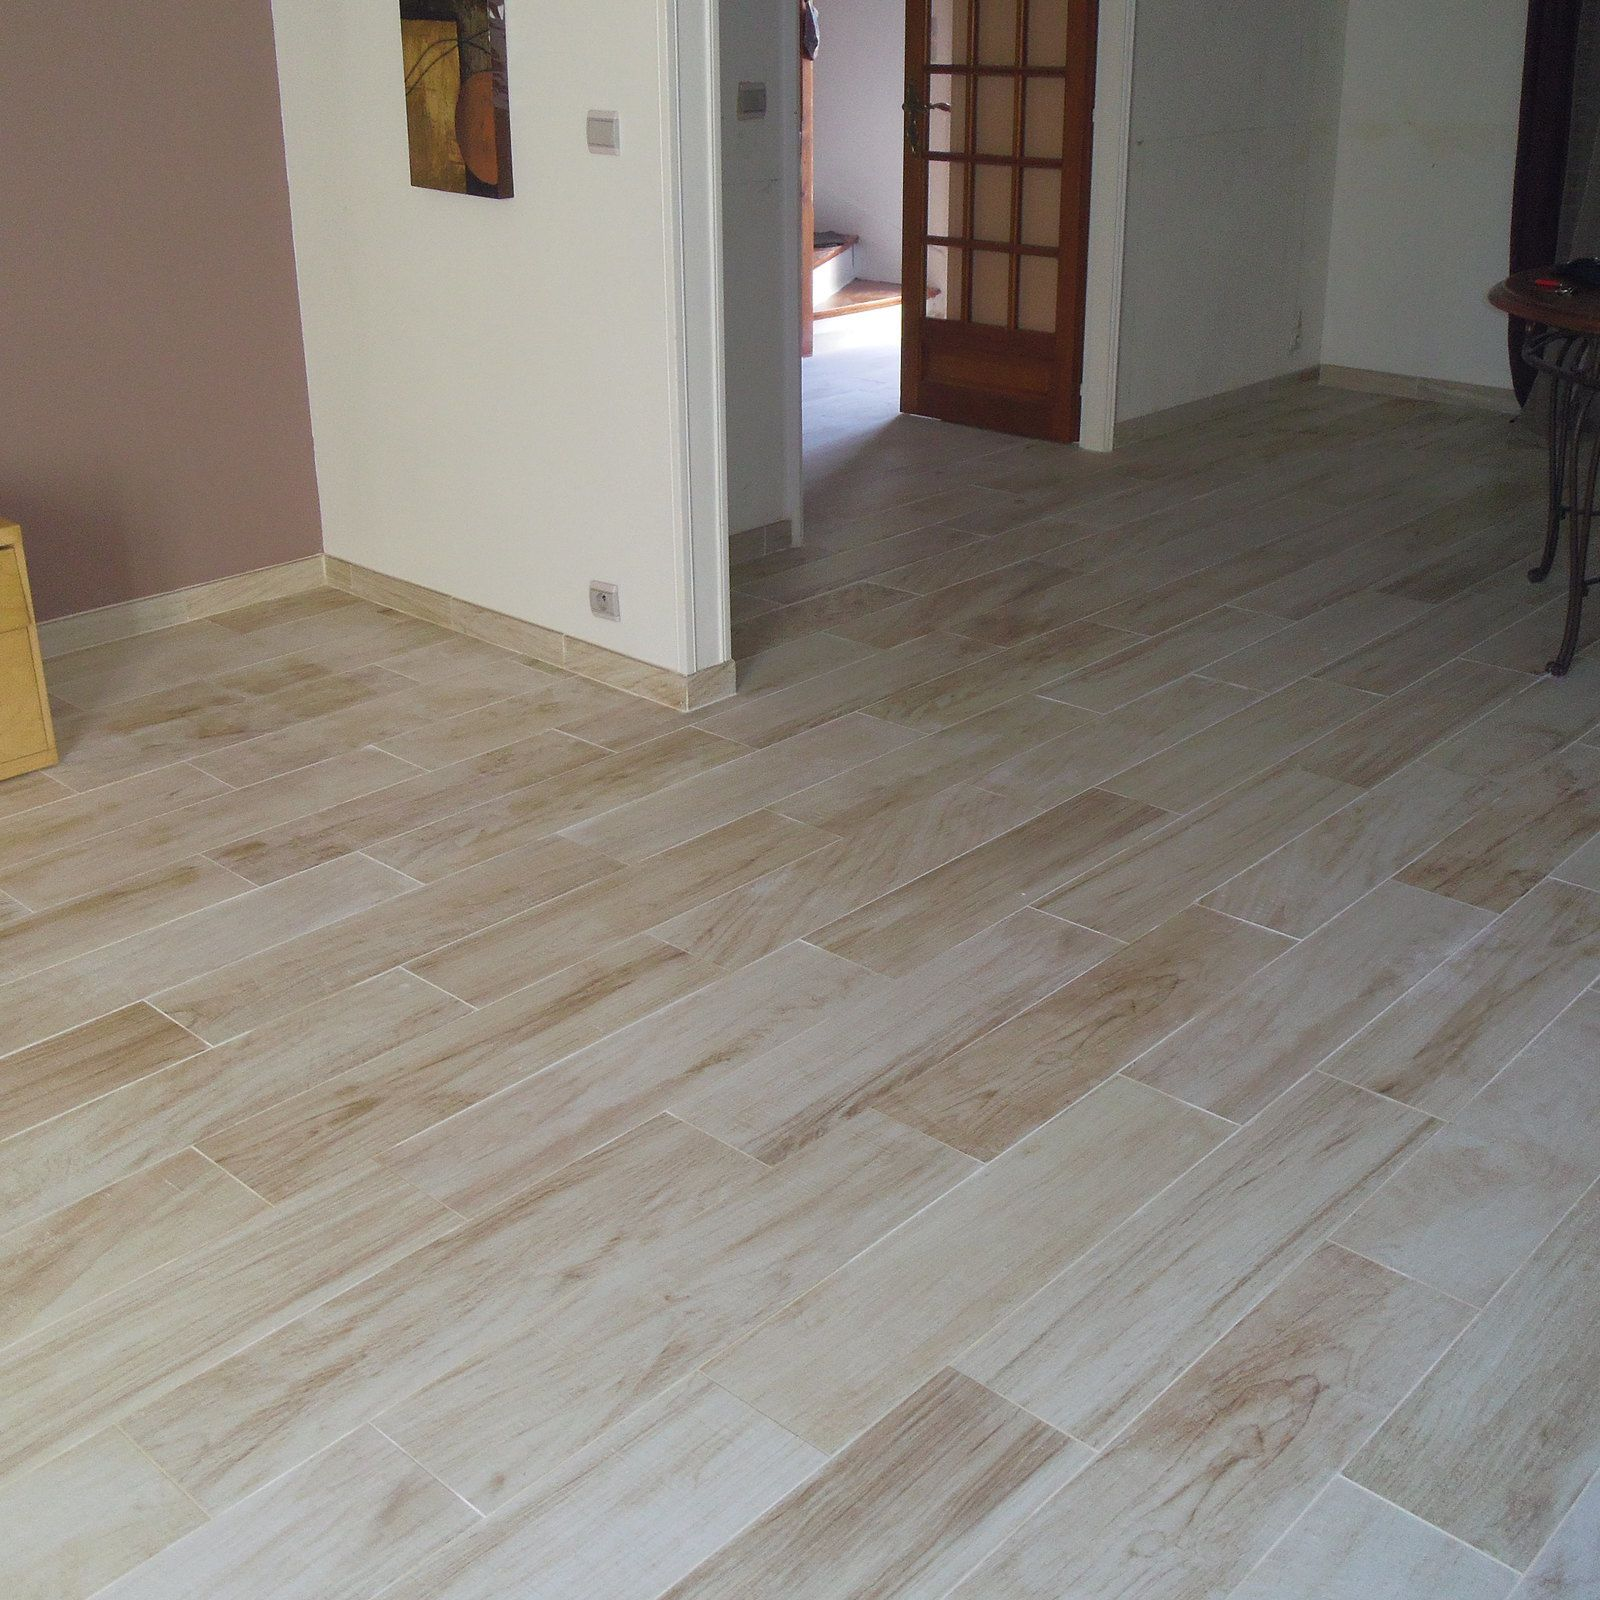 Pose d un carrelage imitation parquet 28 images poser for Carrelage parquet